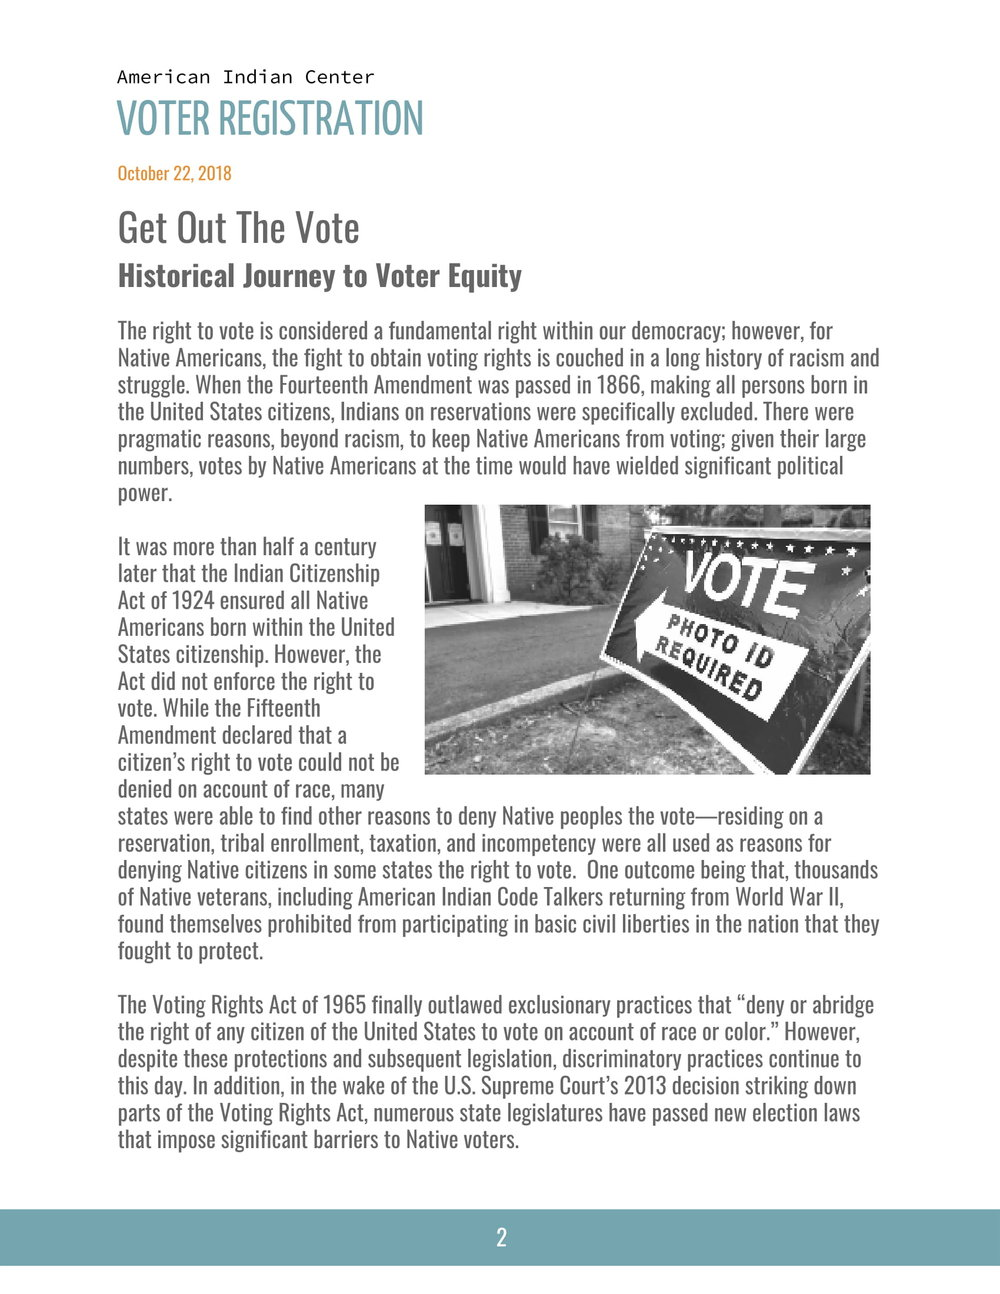 AIC Voter Registration Newsletter-2.jpg